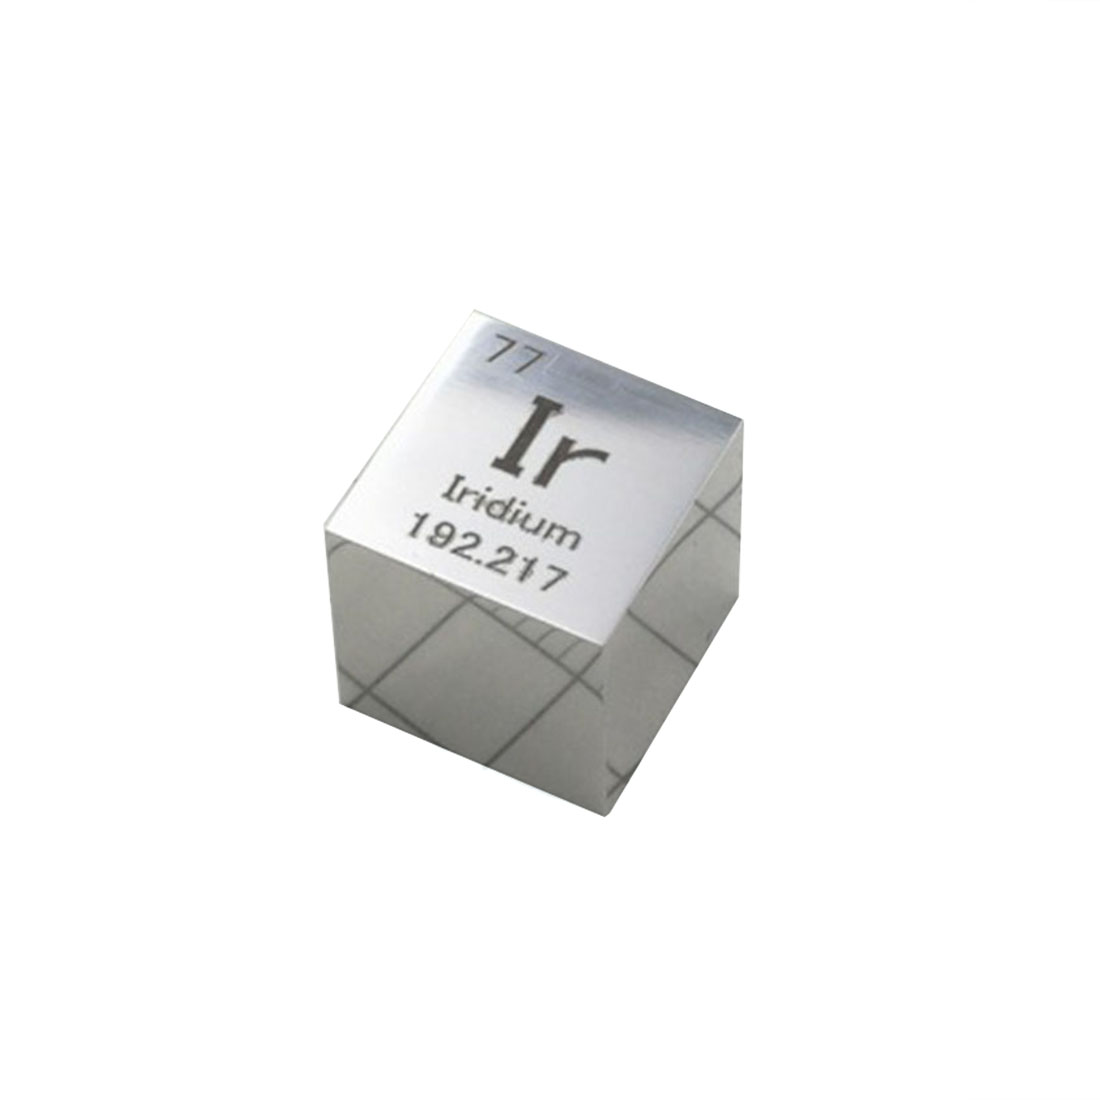 Super Quality Mirror Polished Double-Sided Engraved Metal Iridium Cube Periodic Table Of Elements Cube (Ir≥99.95%)